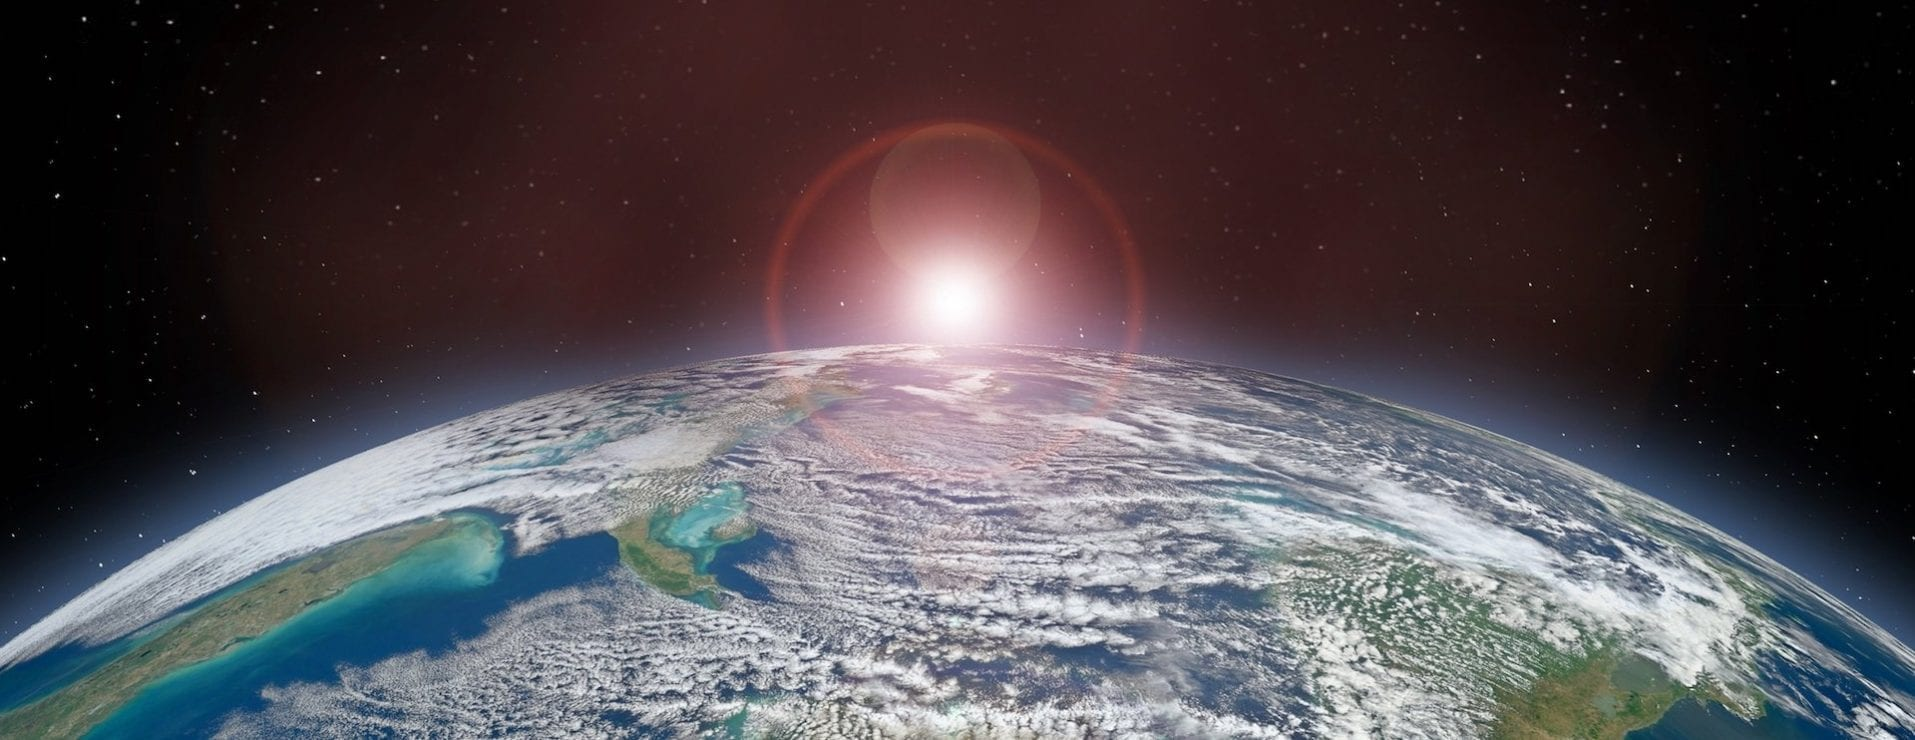 our planet from space sustainability technology